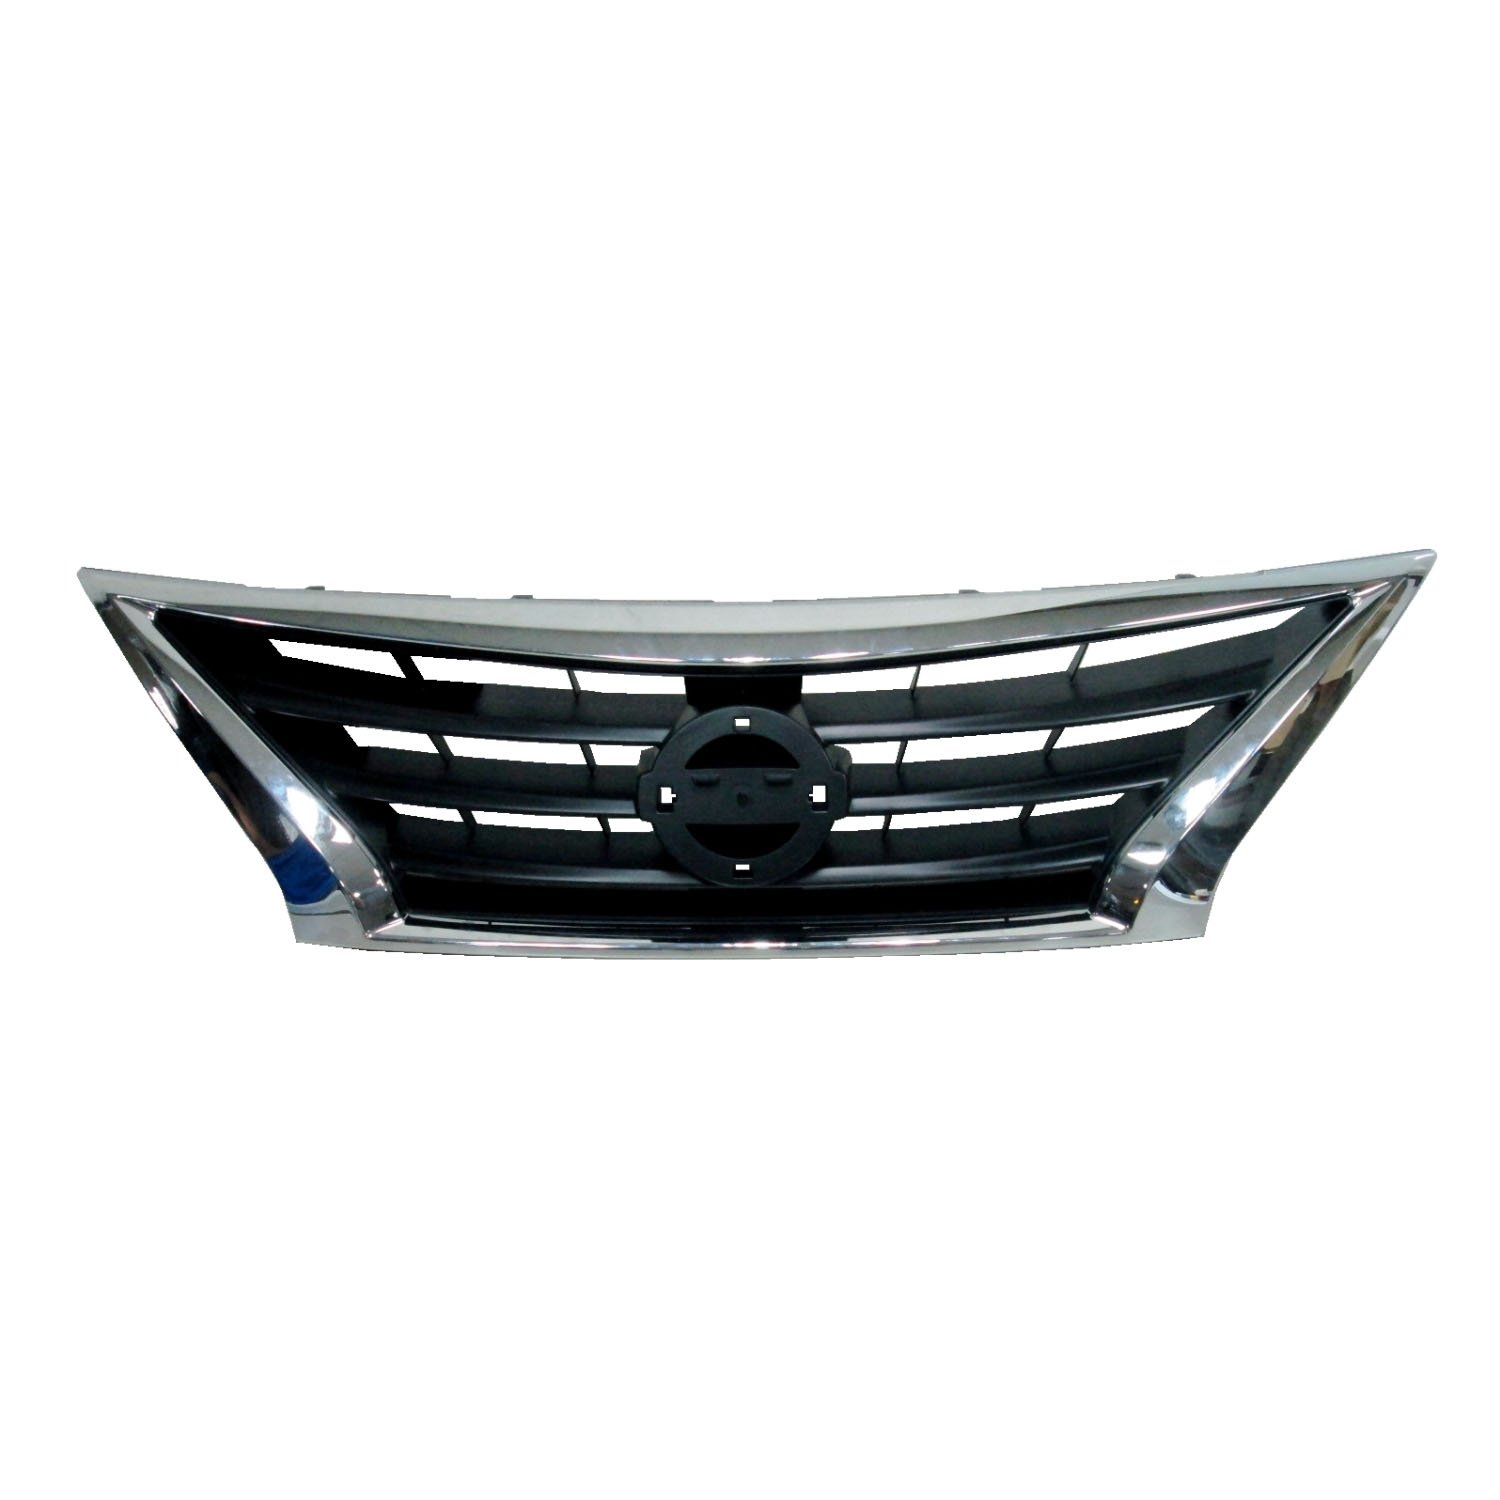 CPP Replacement Fog Light Cover SU1039105 for 2013-2014 Subaru Legacy